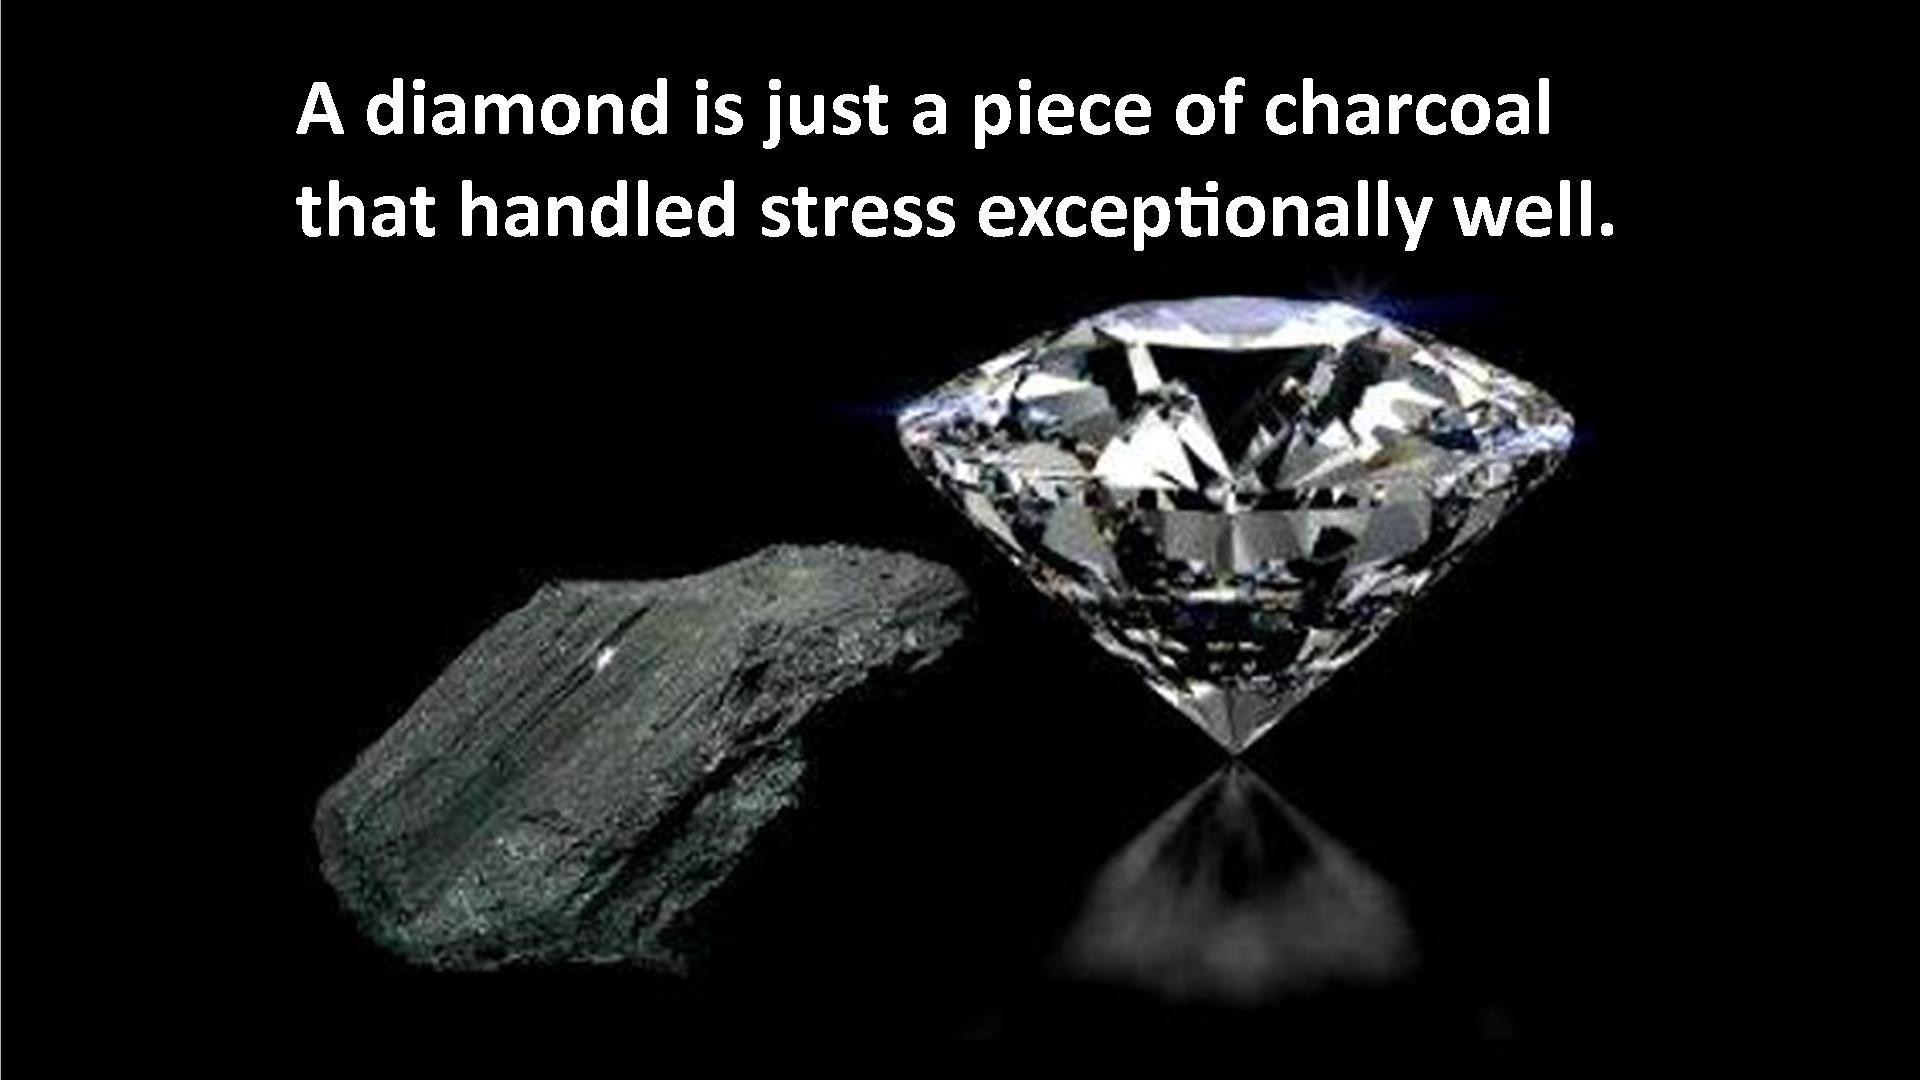 coal about news common diamonds diamond misconceptions